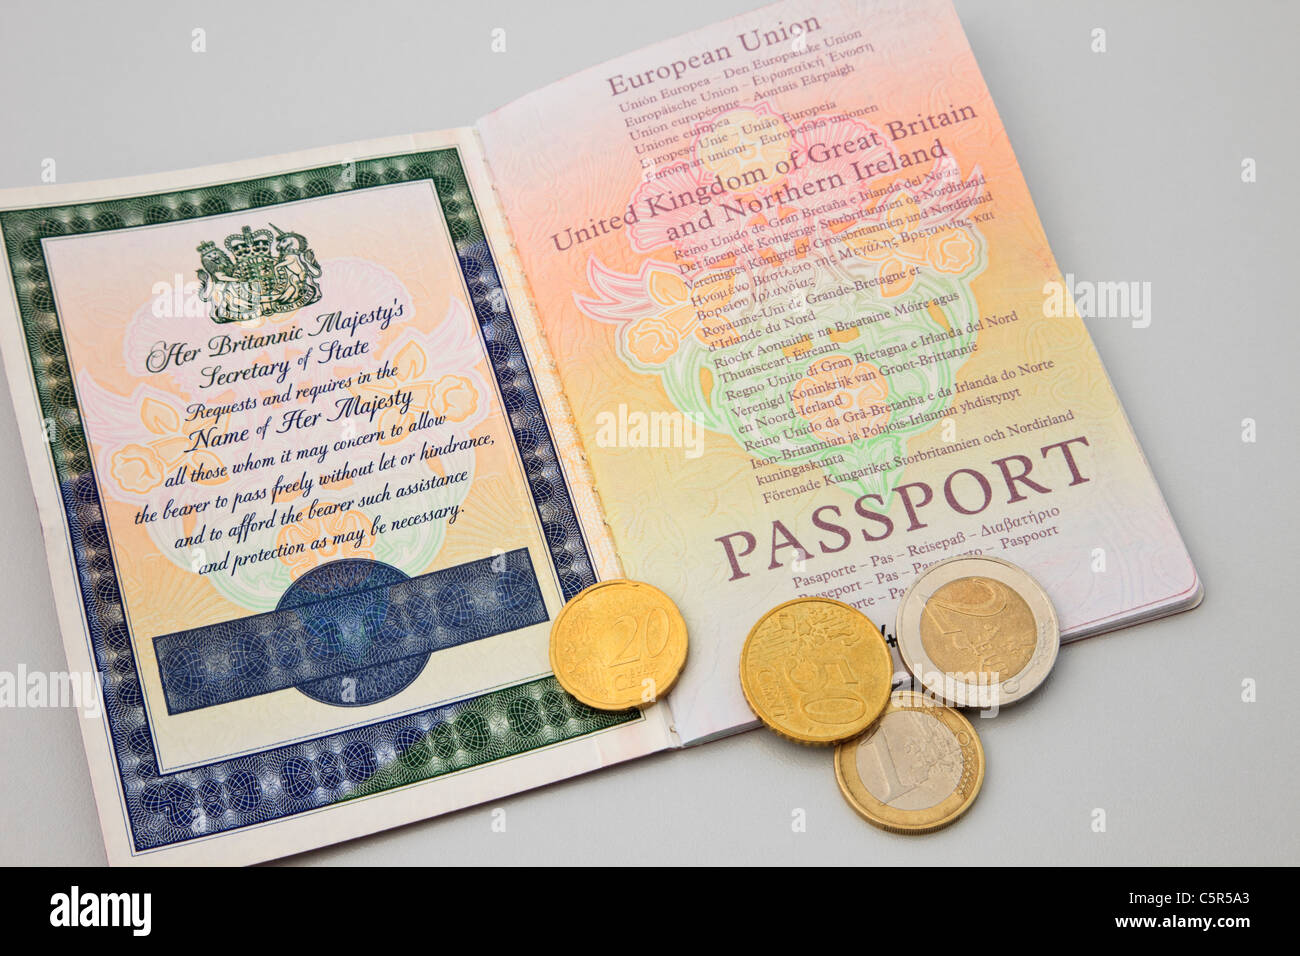 Uk, Britain A British Passport Open With Some Euro Coins For Travelling In  The British